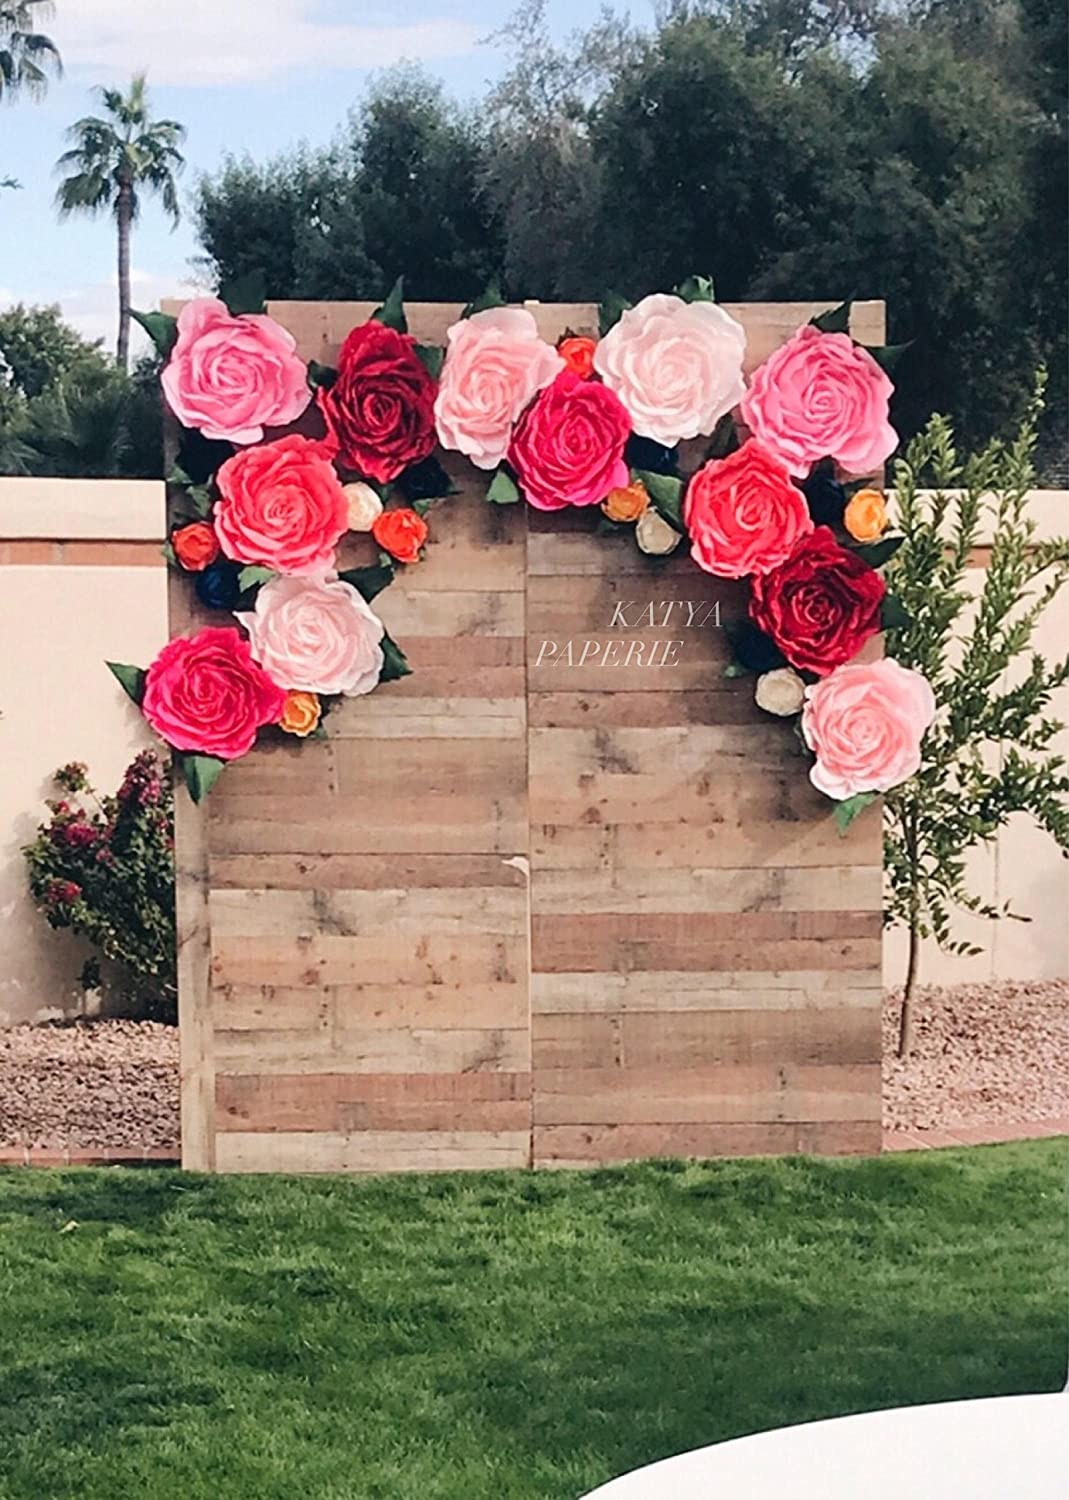 Amazon Com Giant Paper Flower Wall Display Garden Party Decor